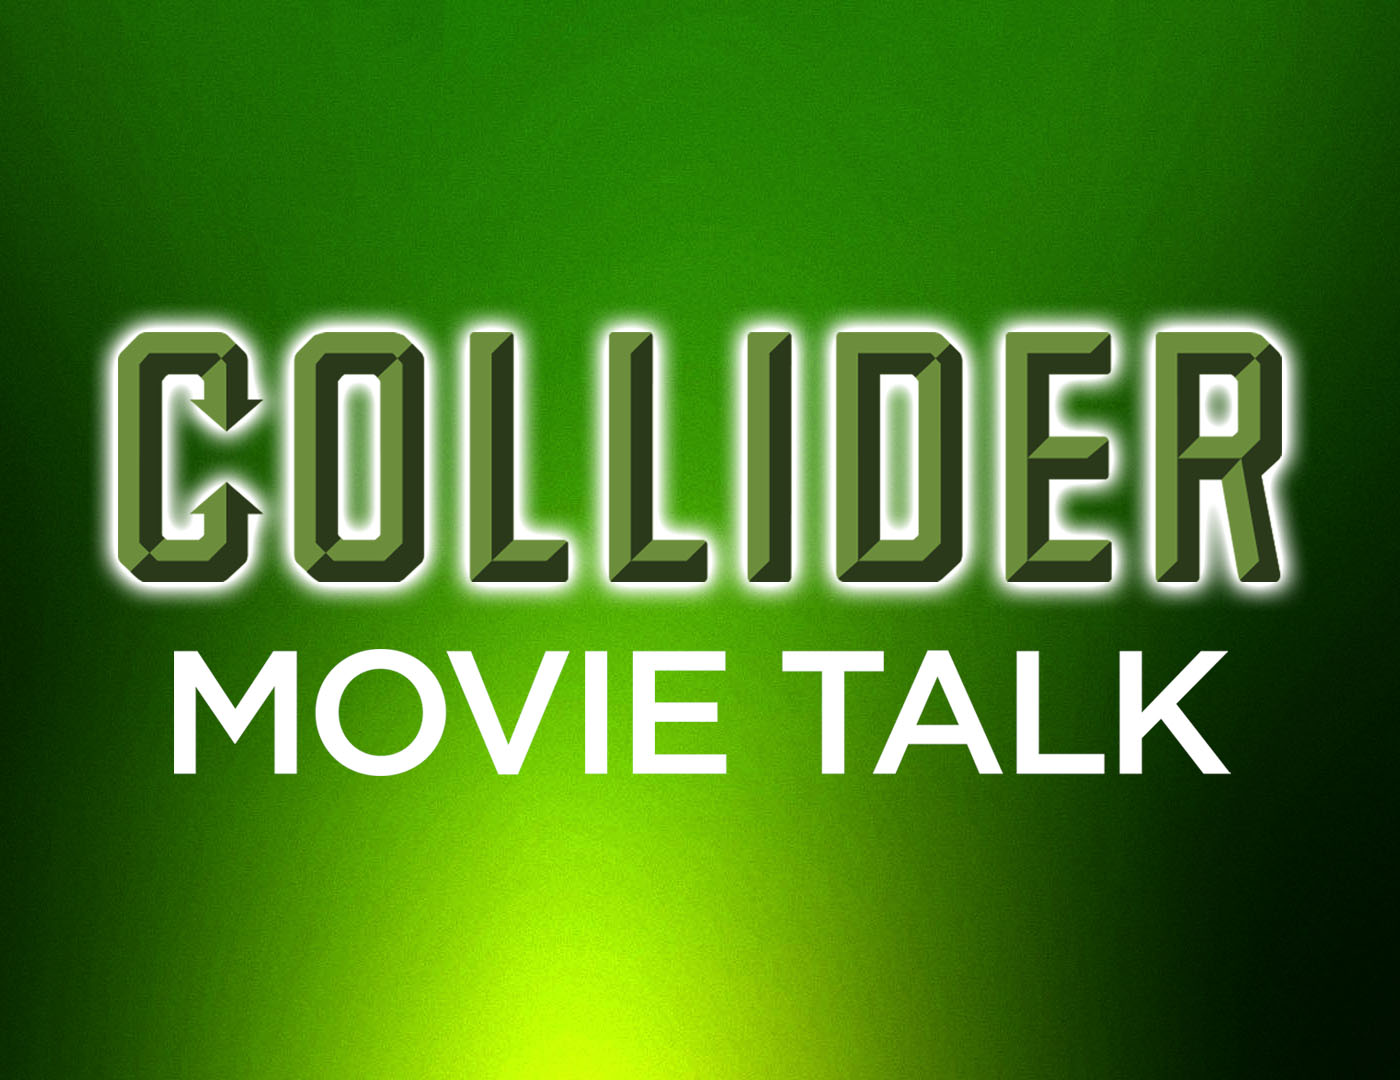 Collider Movie Talk - First Look At Power Ranger Reboot New Suits